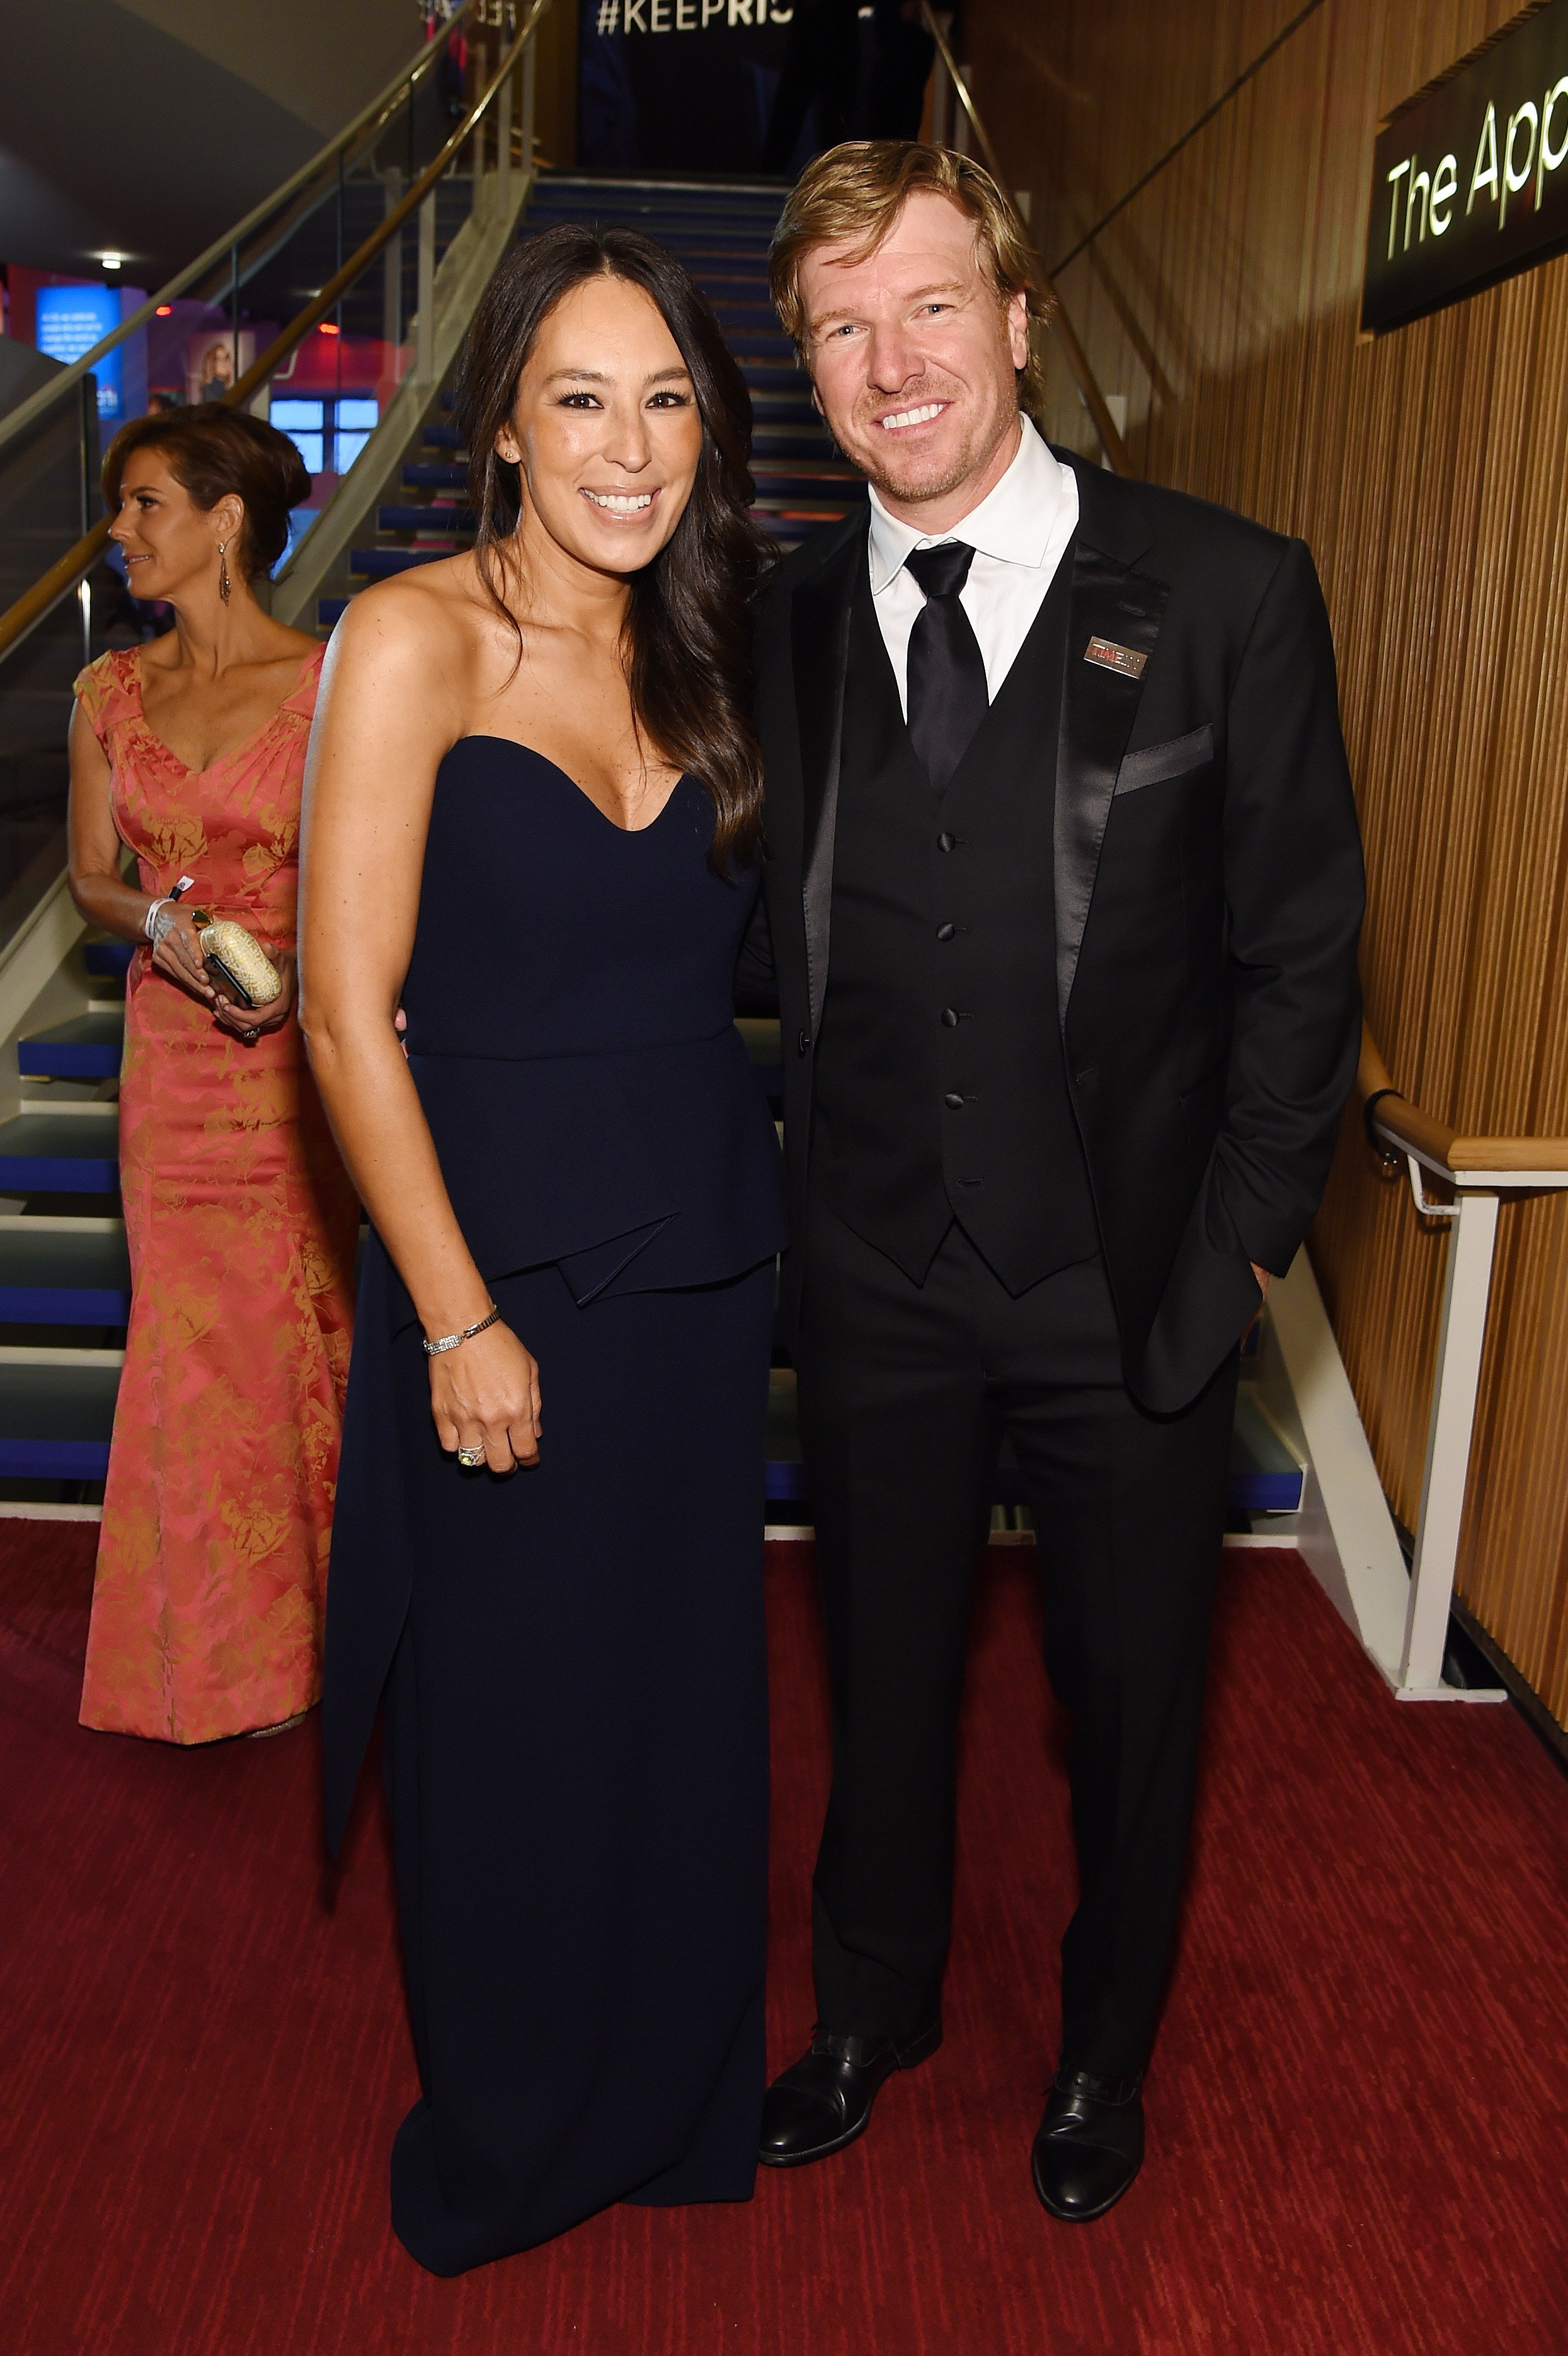 Joanna Gaines and Chip Gaines attend the TIME 100 Gala 2019 Cocktails on April 23, 2019, in New York City. | Photo: Getty Images.